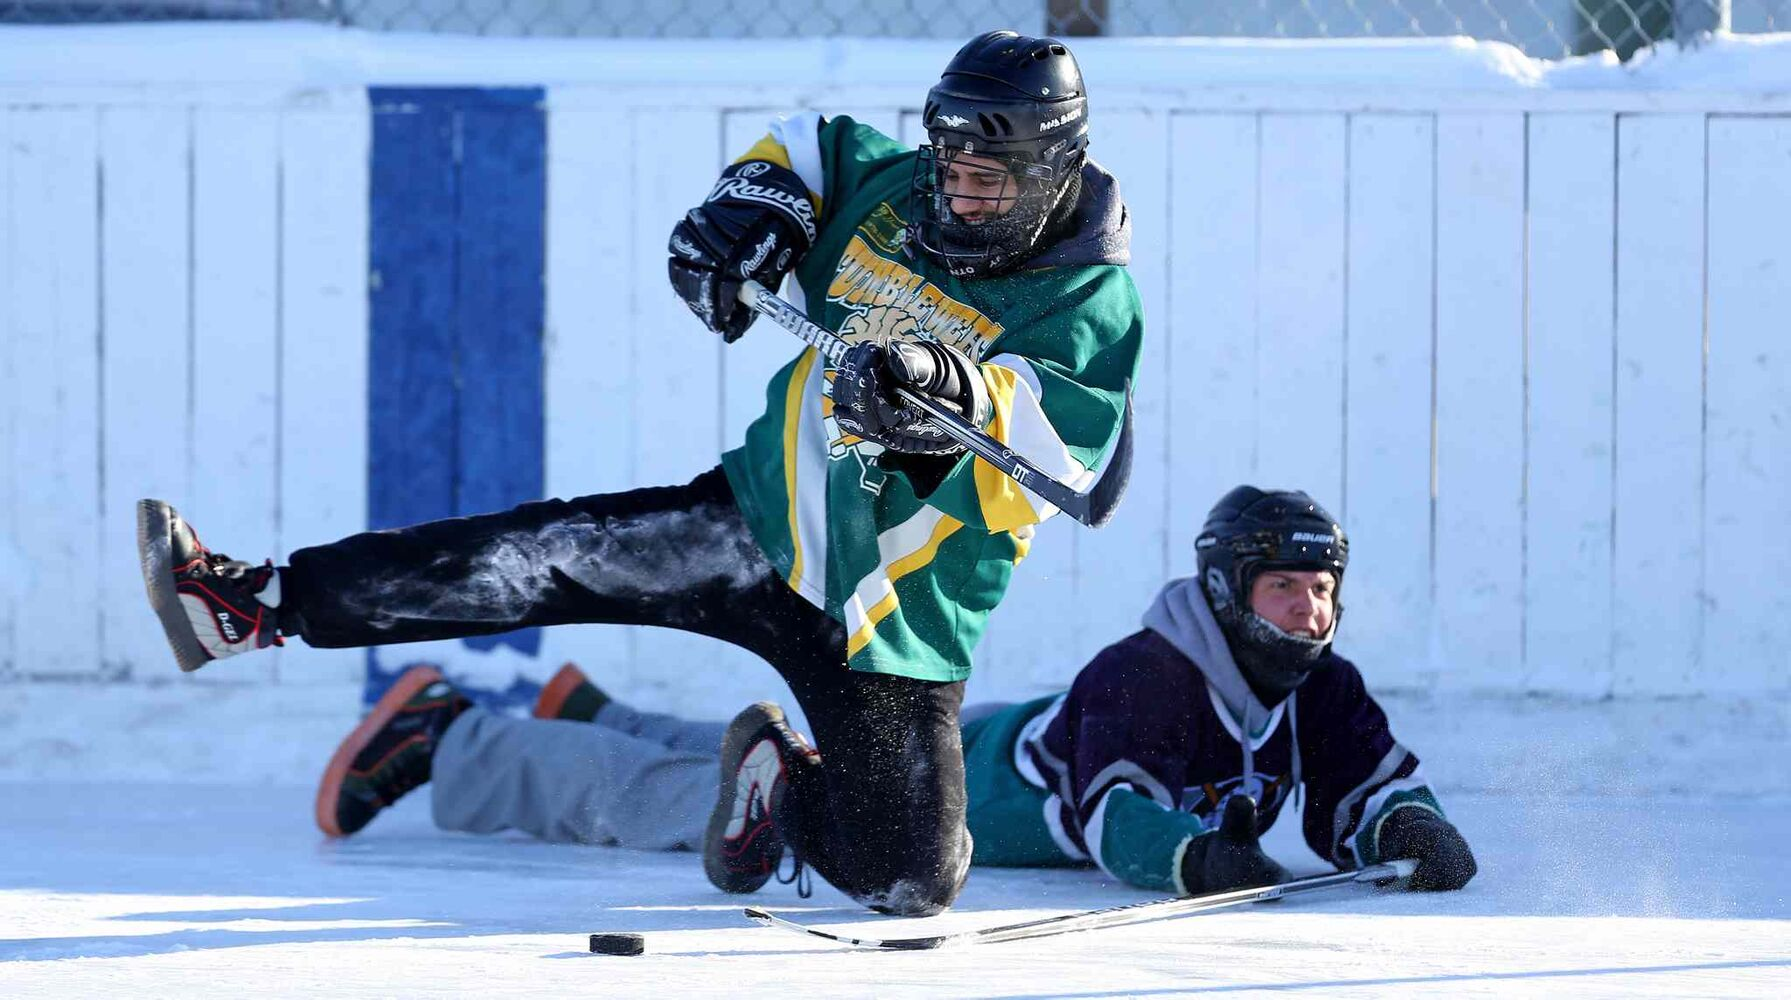 Kyle Macpherson of the Tumbleweeds plays the puck from his knee after getting tangled up with one of the Mighty Puckin' Drunks during a spongee game. (Trevor Hagan / Winnipeg Free Press)